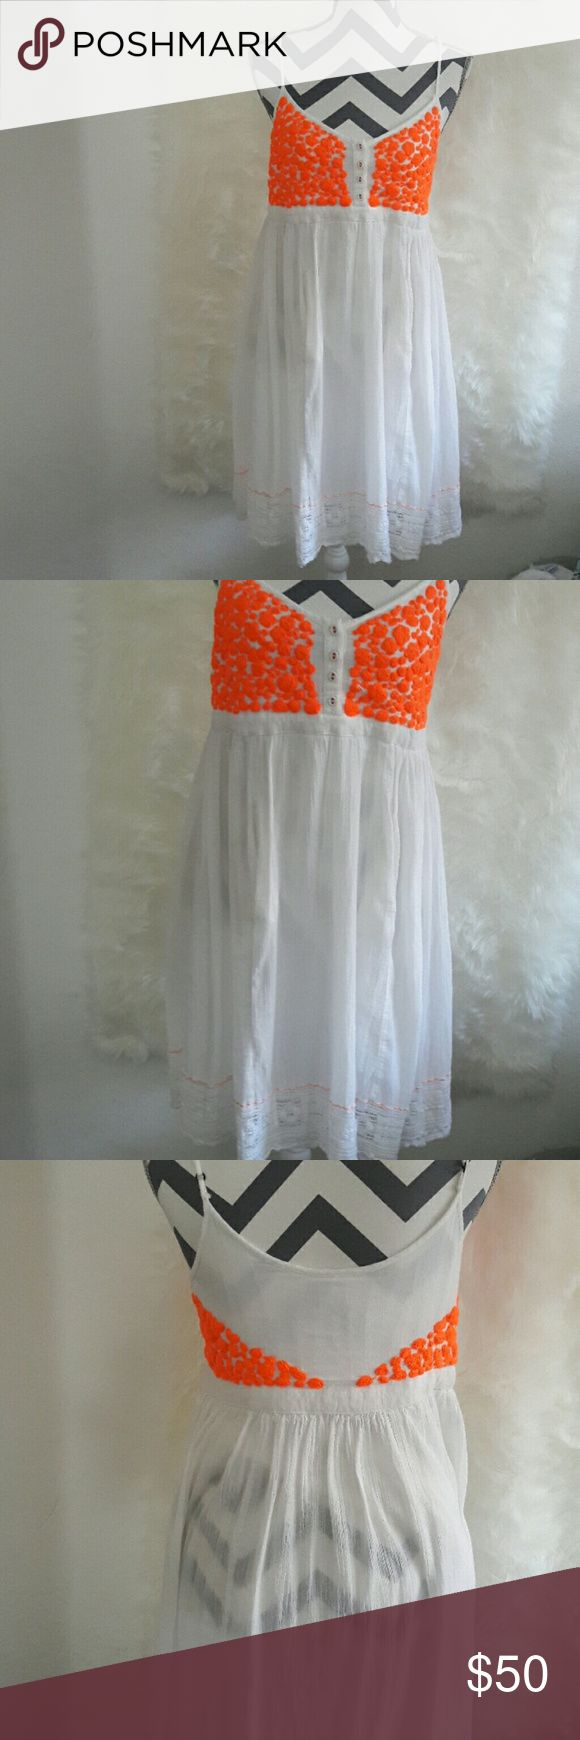 """Cute free people white flowy dress size small White , Flowy Dress With Neon Orange Embroidery And Detailing. Perfect As A Beach Dress or for the summer  And Even Has Pockets. Length """"35inches 100%cotton Free People Dresses Midi"""